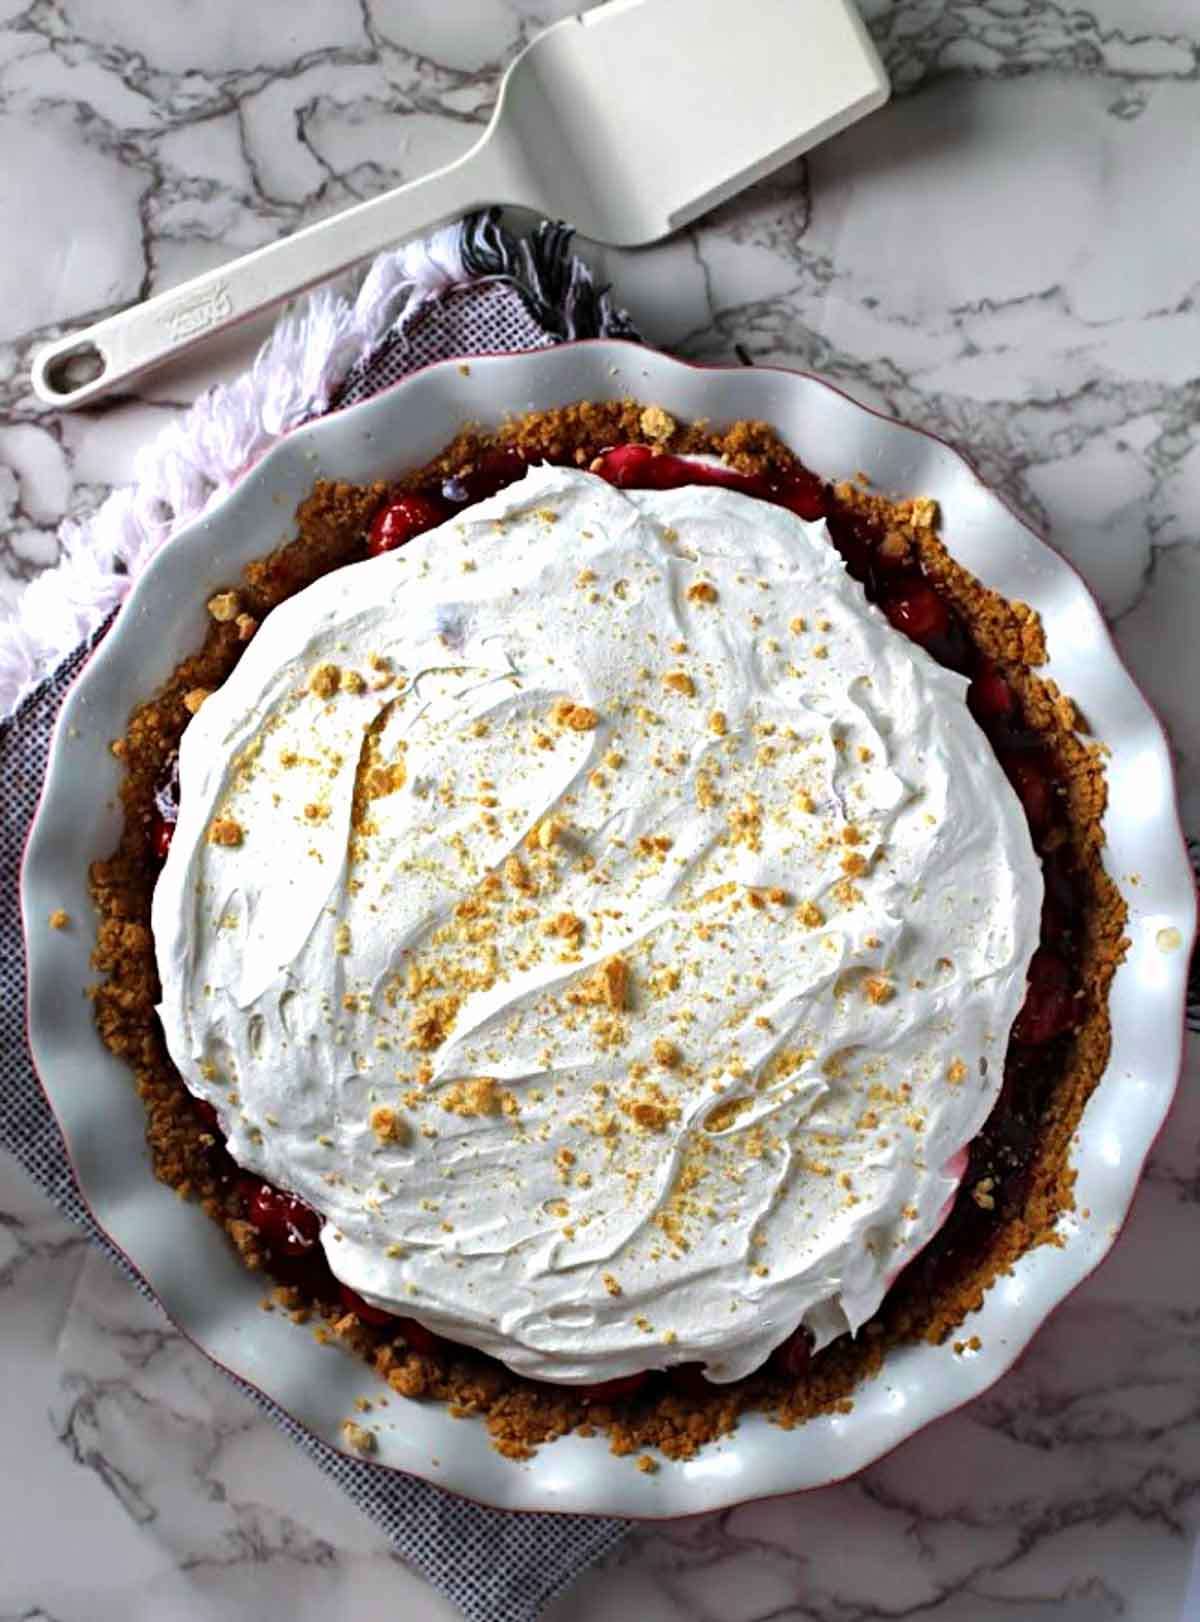 Cherry delight dessert in a pie pan topped with whipped cream